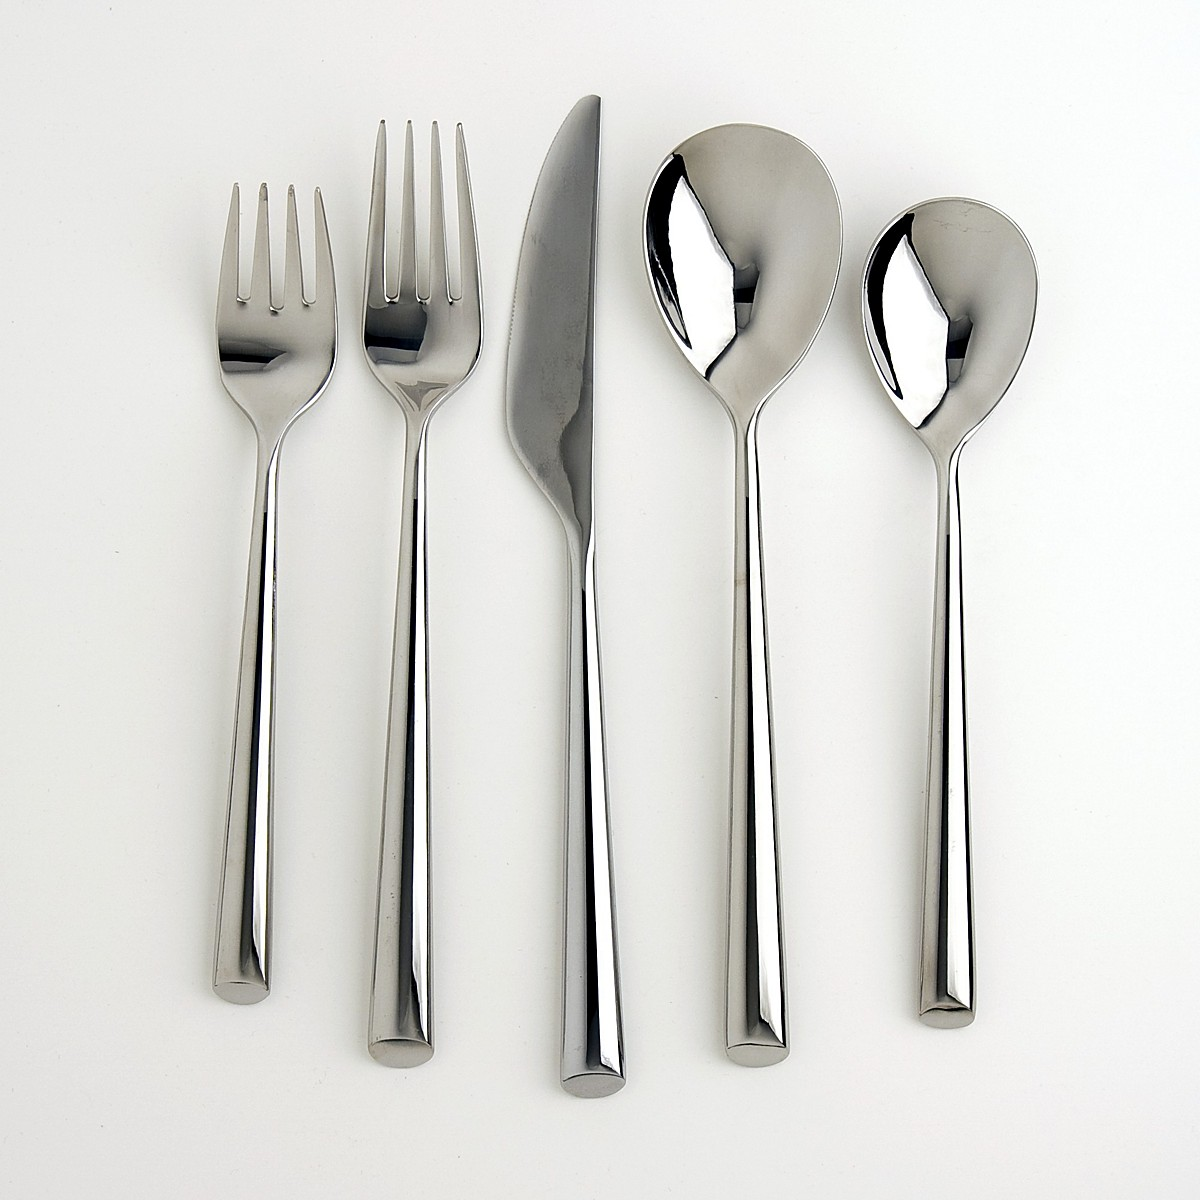 Awesome Cambridge Flatware 5 Pcs Silverware Flatware For Kitchen Or Dining Ideas